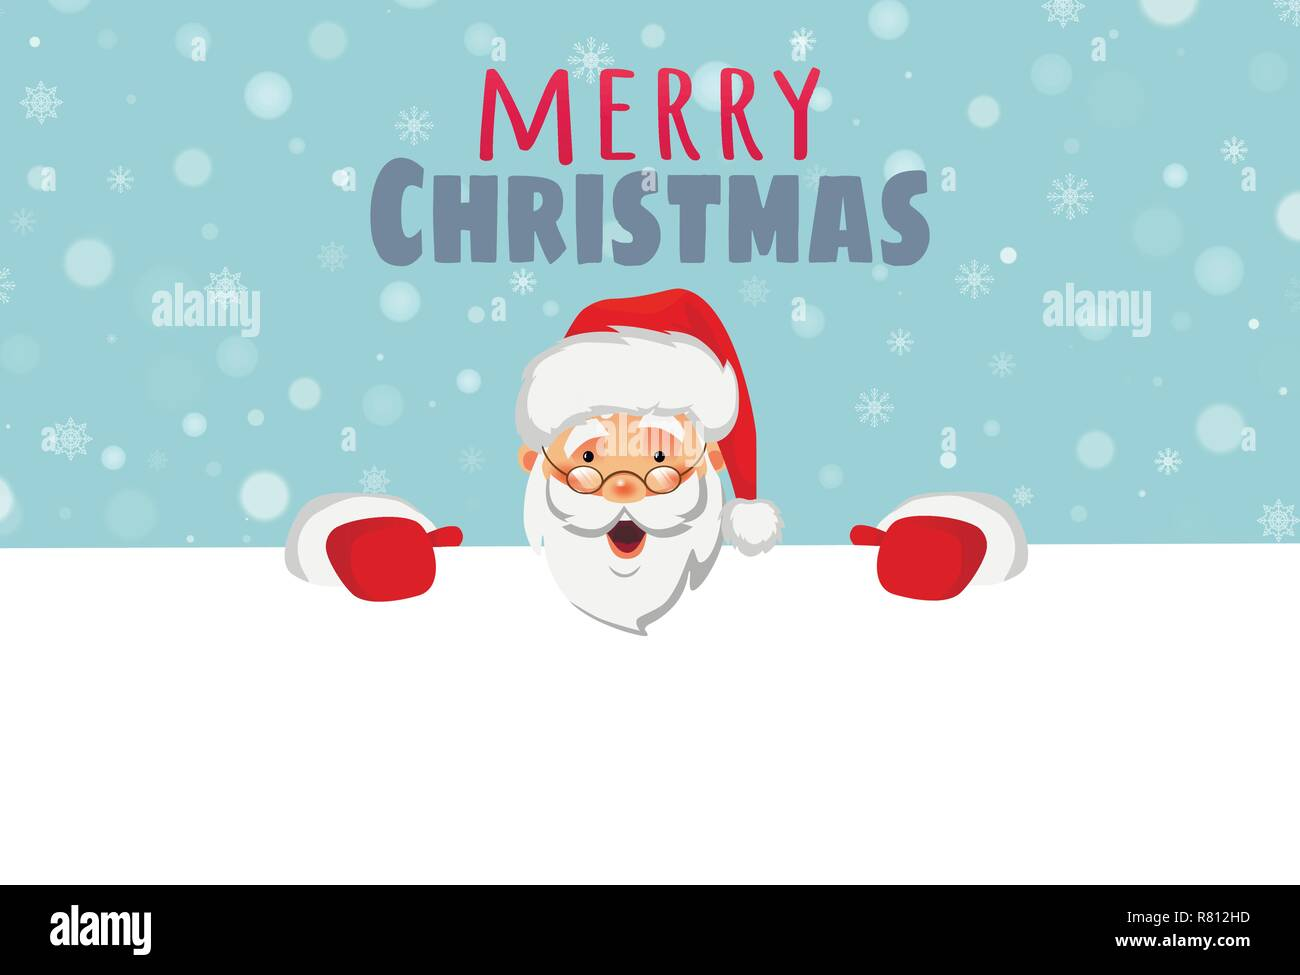 Santa Claus holding border. Christmas blank advertising banner. Merry christmas text. Face of Santa Claus in red hat vector illustration - Stock Vector